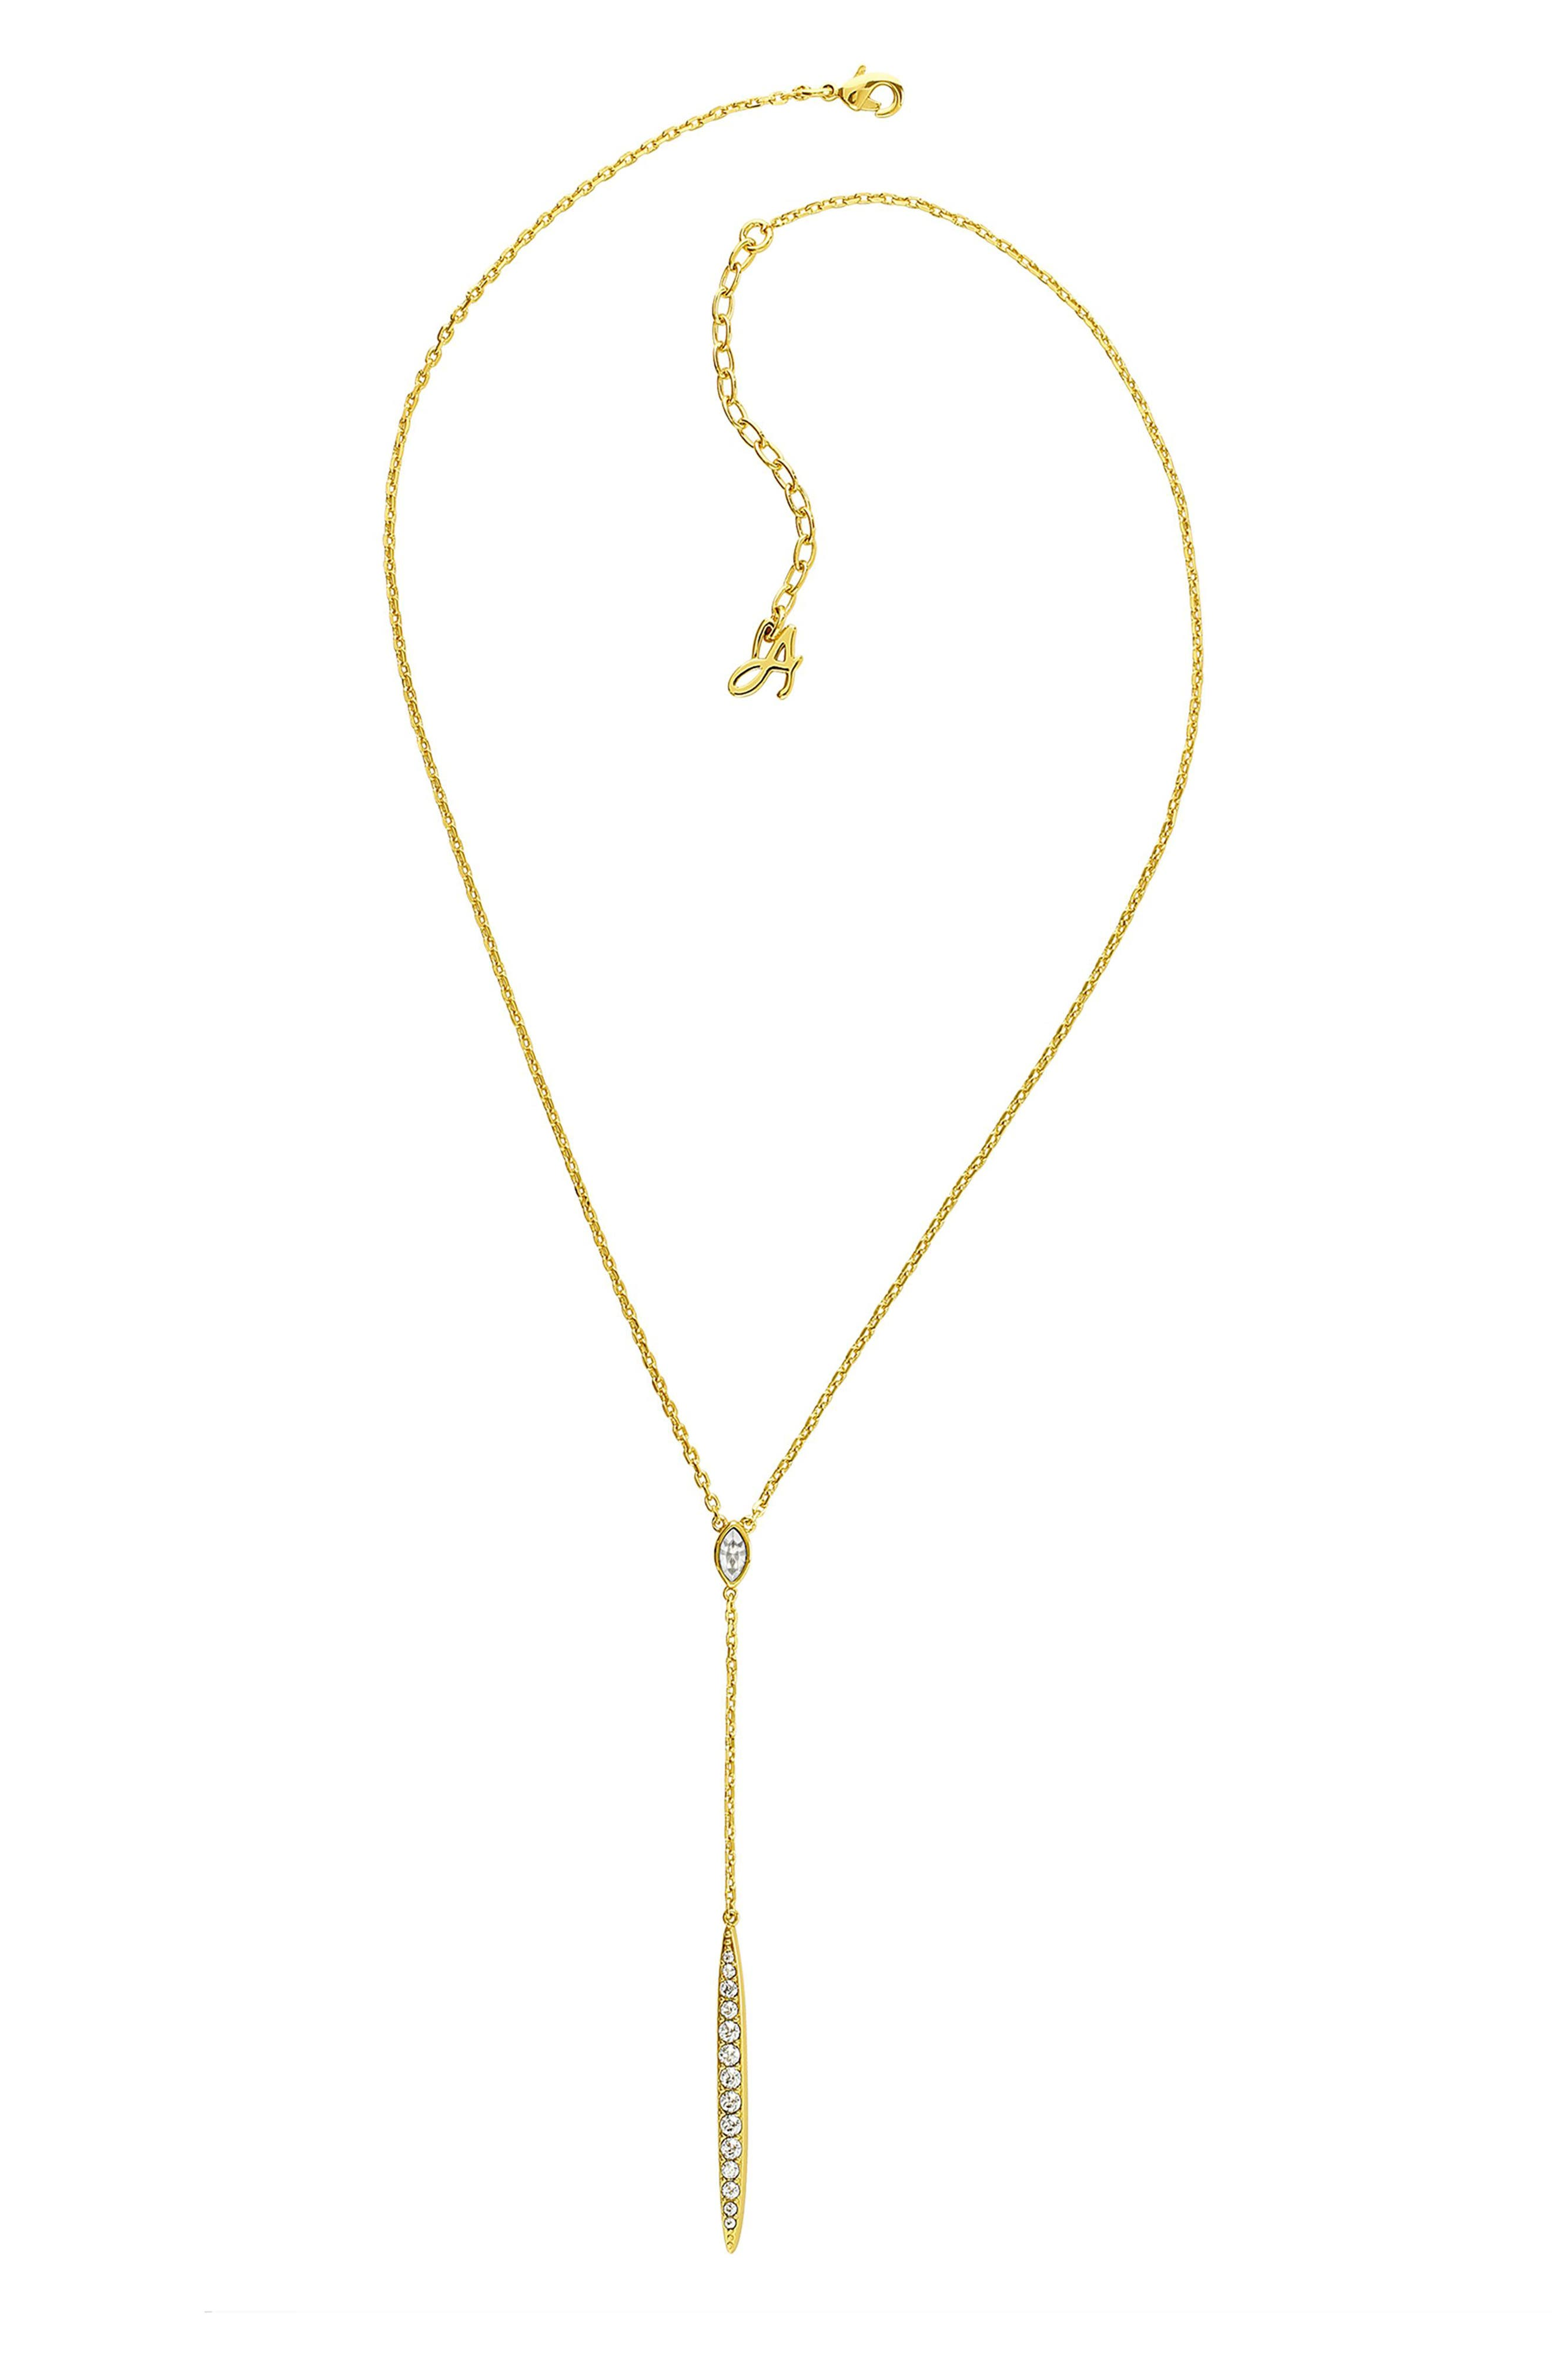 ADORE Pave Crystal Bar Necklace in Gold